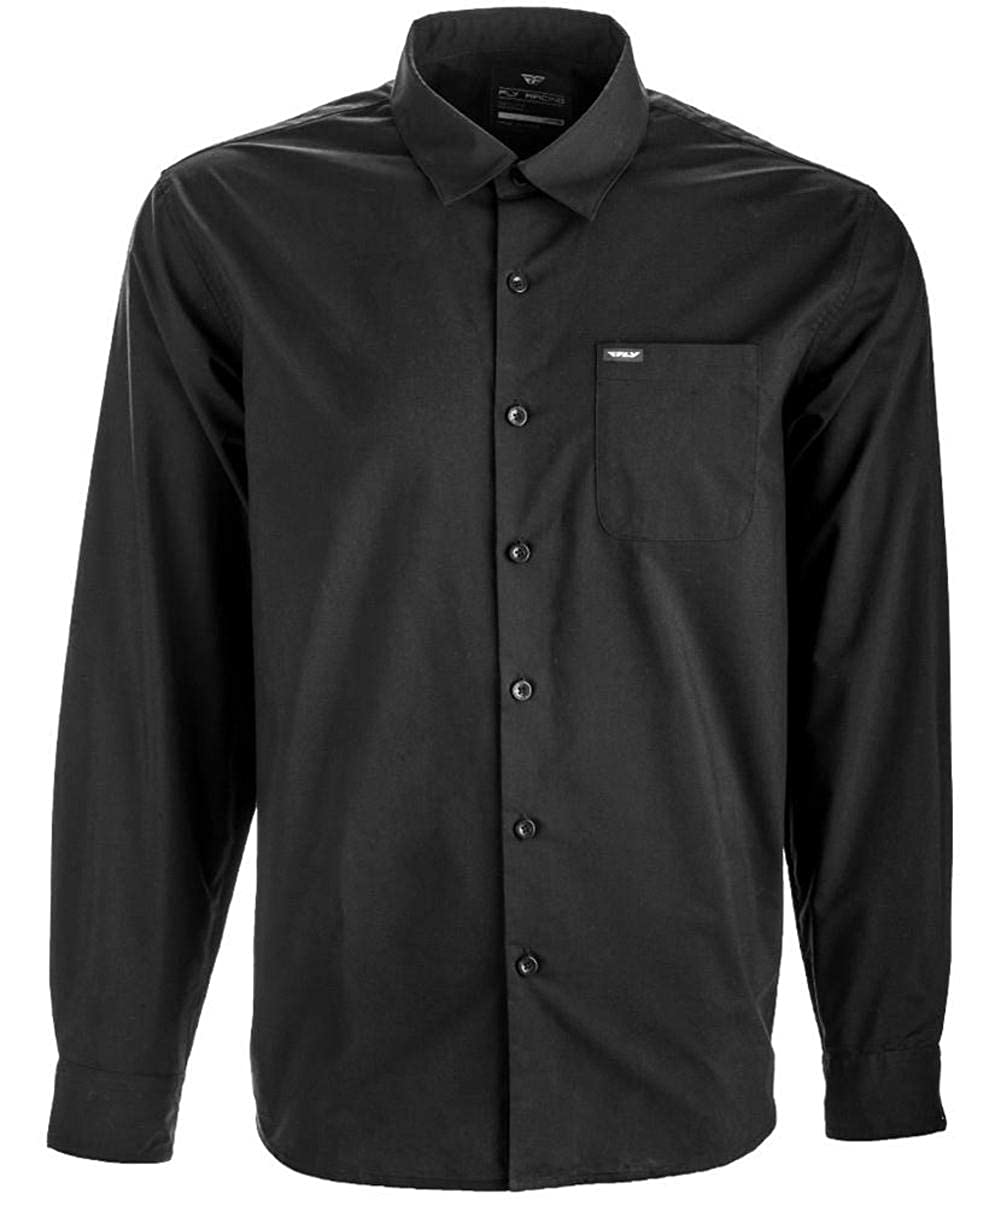 Fly Racing L//S BUTTON UP SHIRT BLACK 2X